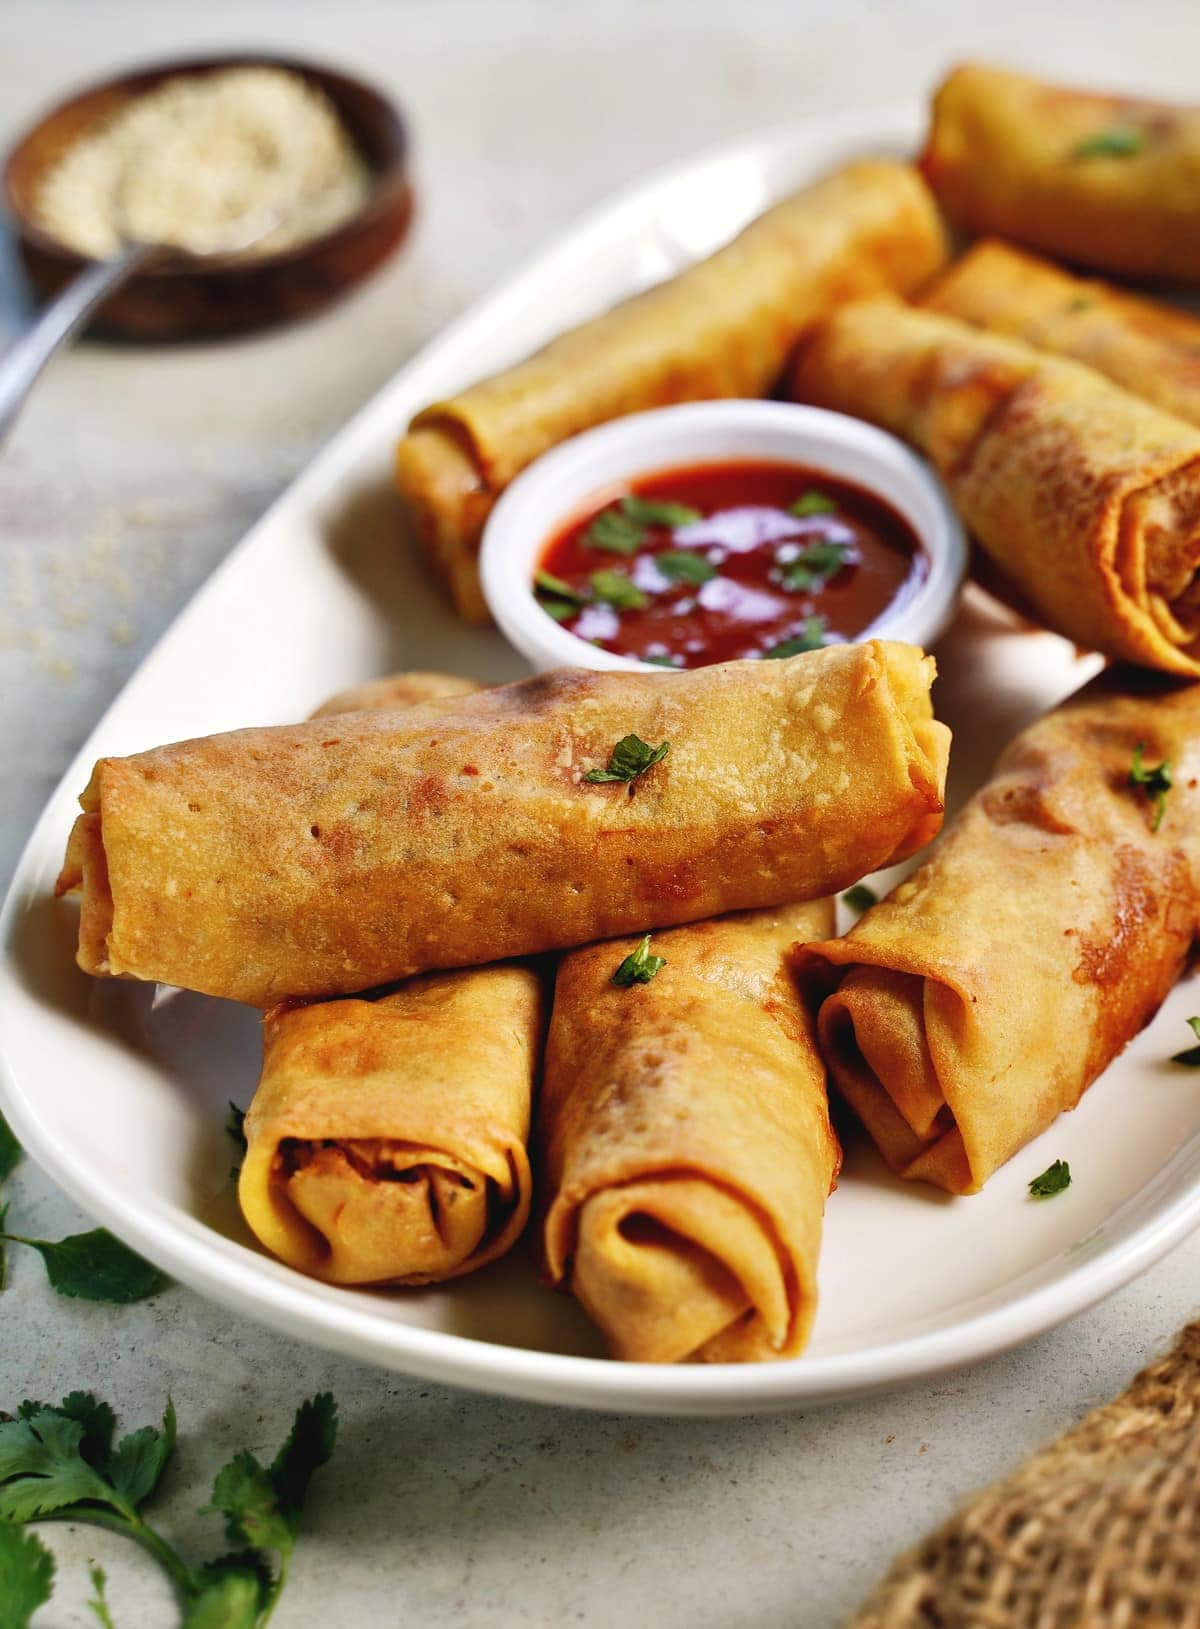 close-up of baked gluten-free spring rolls on white plate